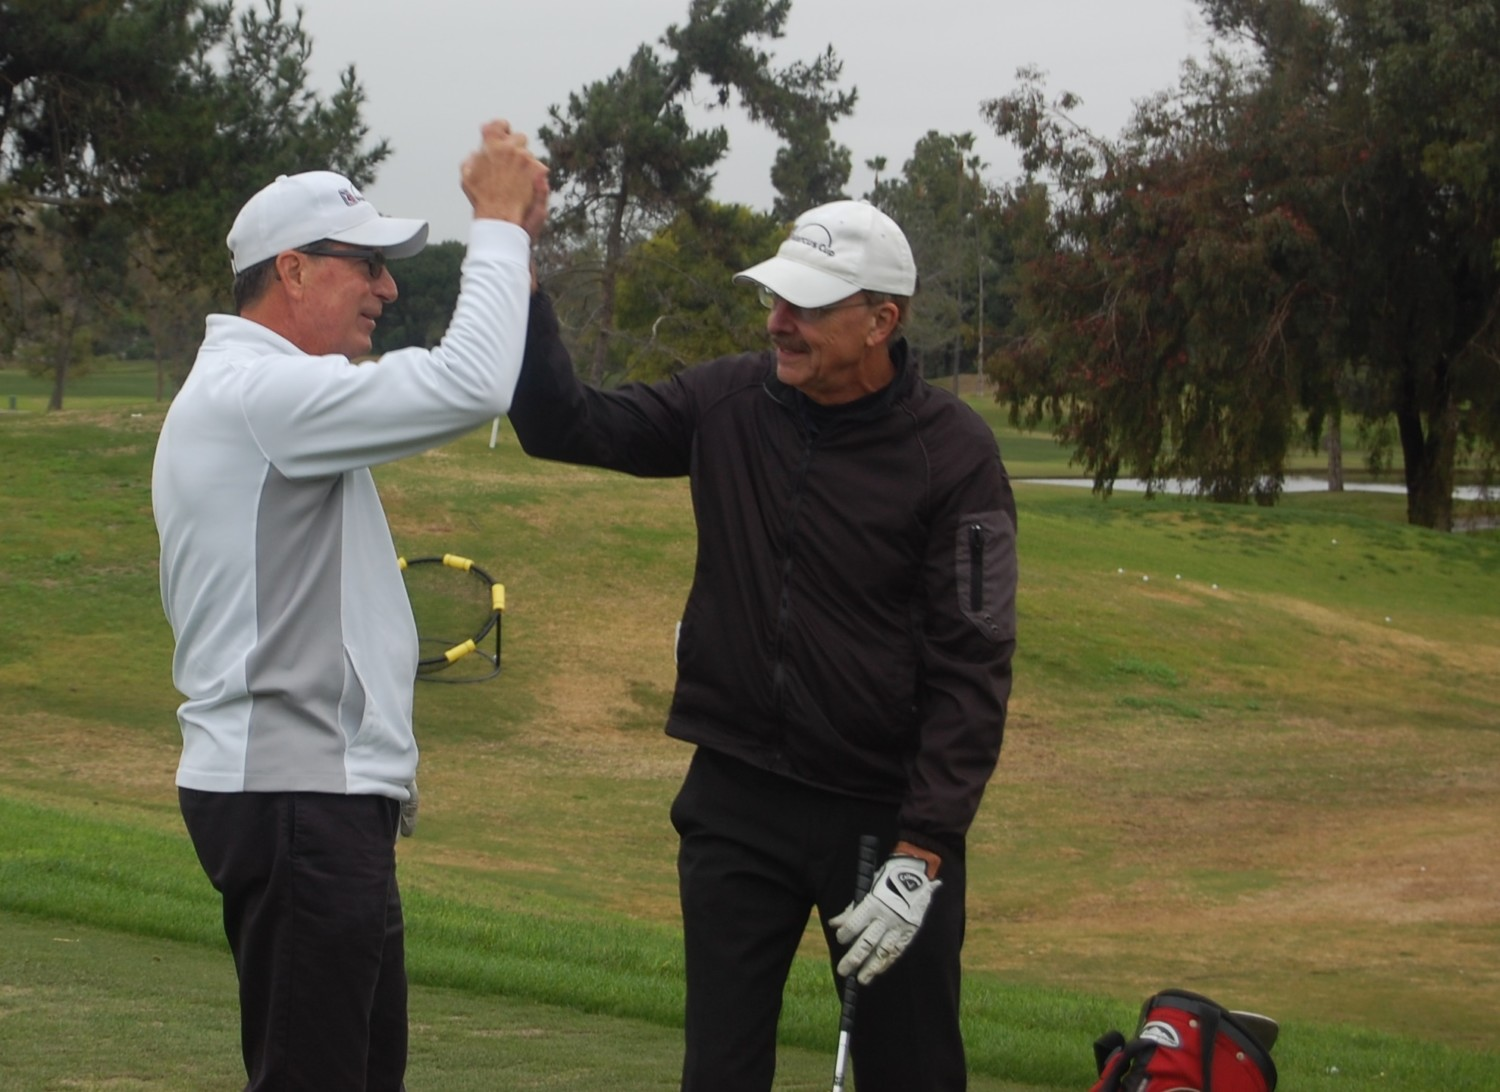 Golfers tee off big time to help wounded warriors